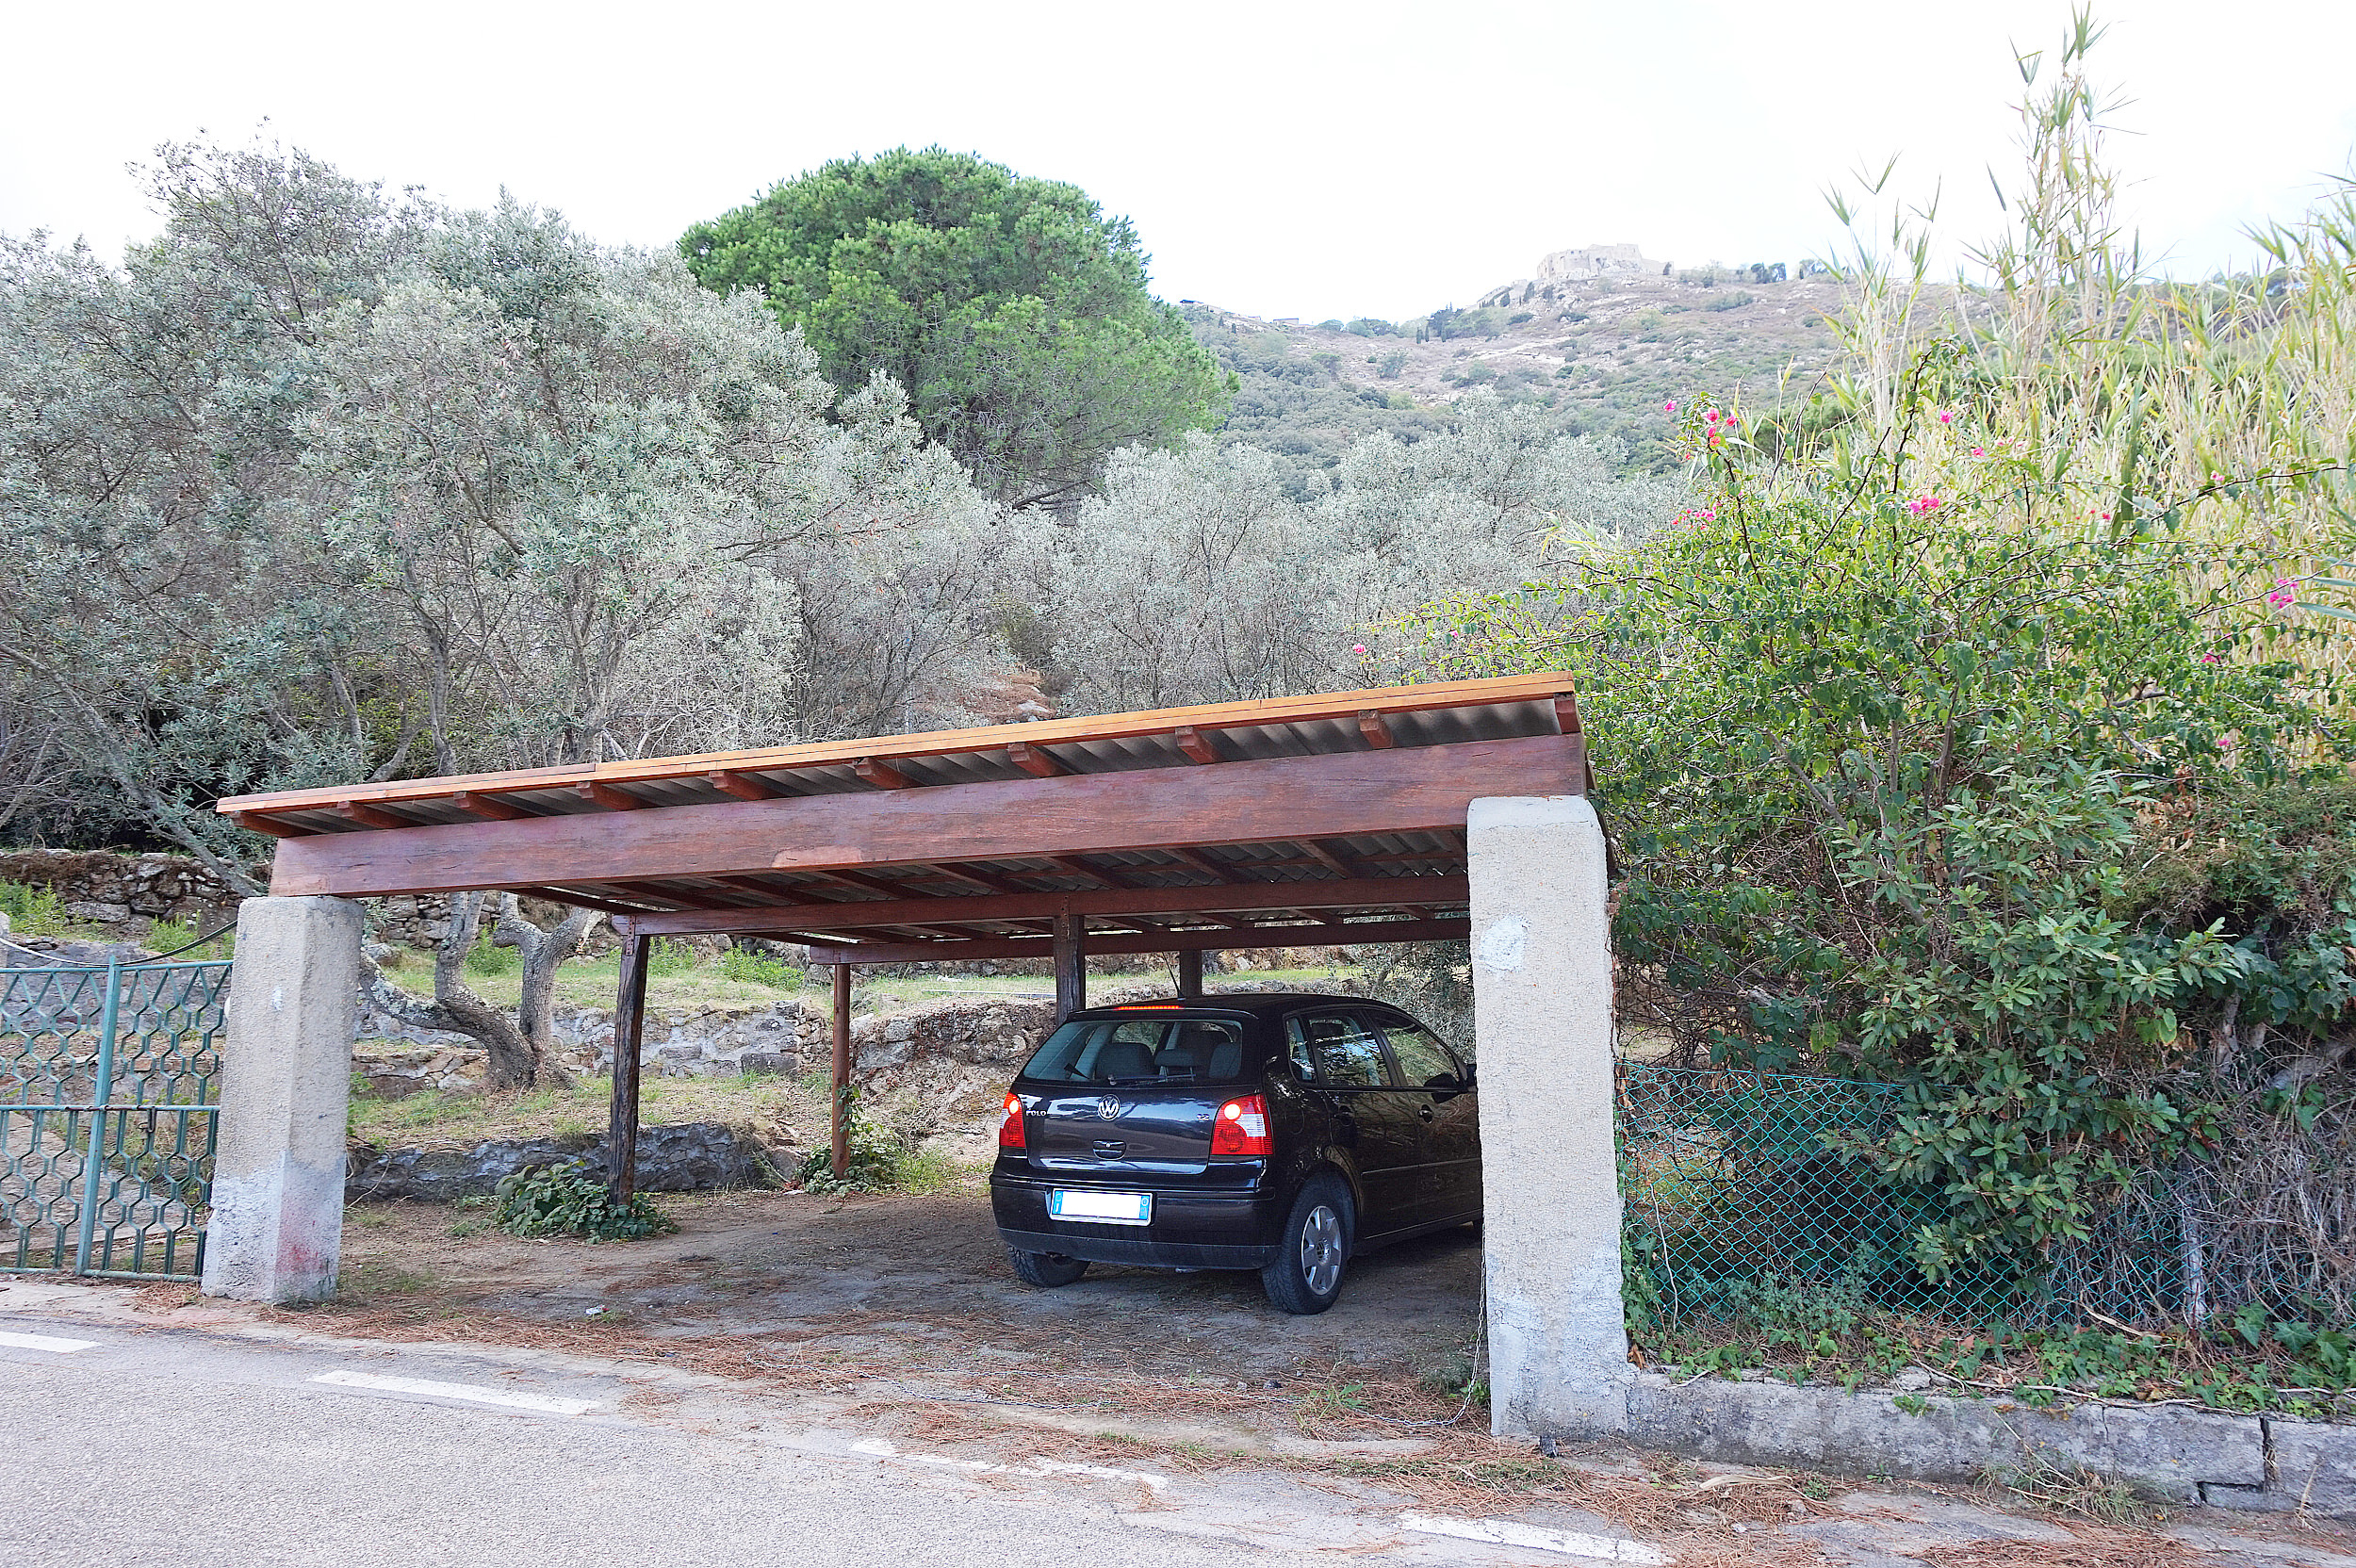 Copy of Villa parking